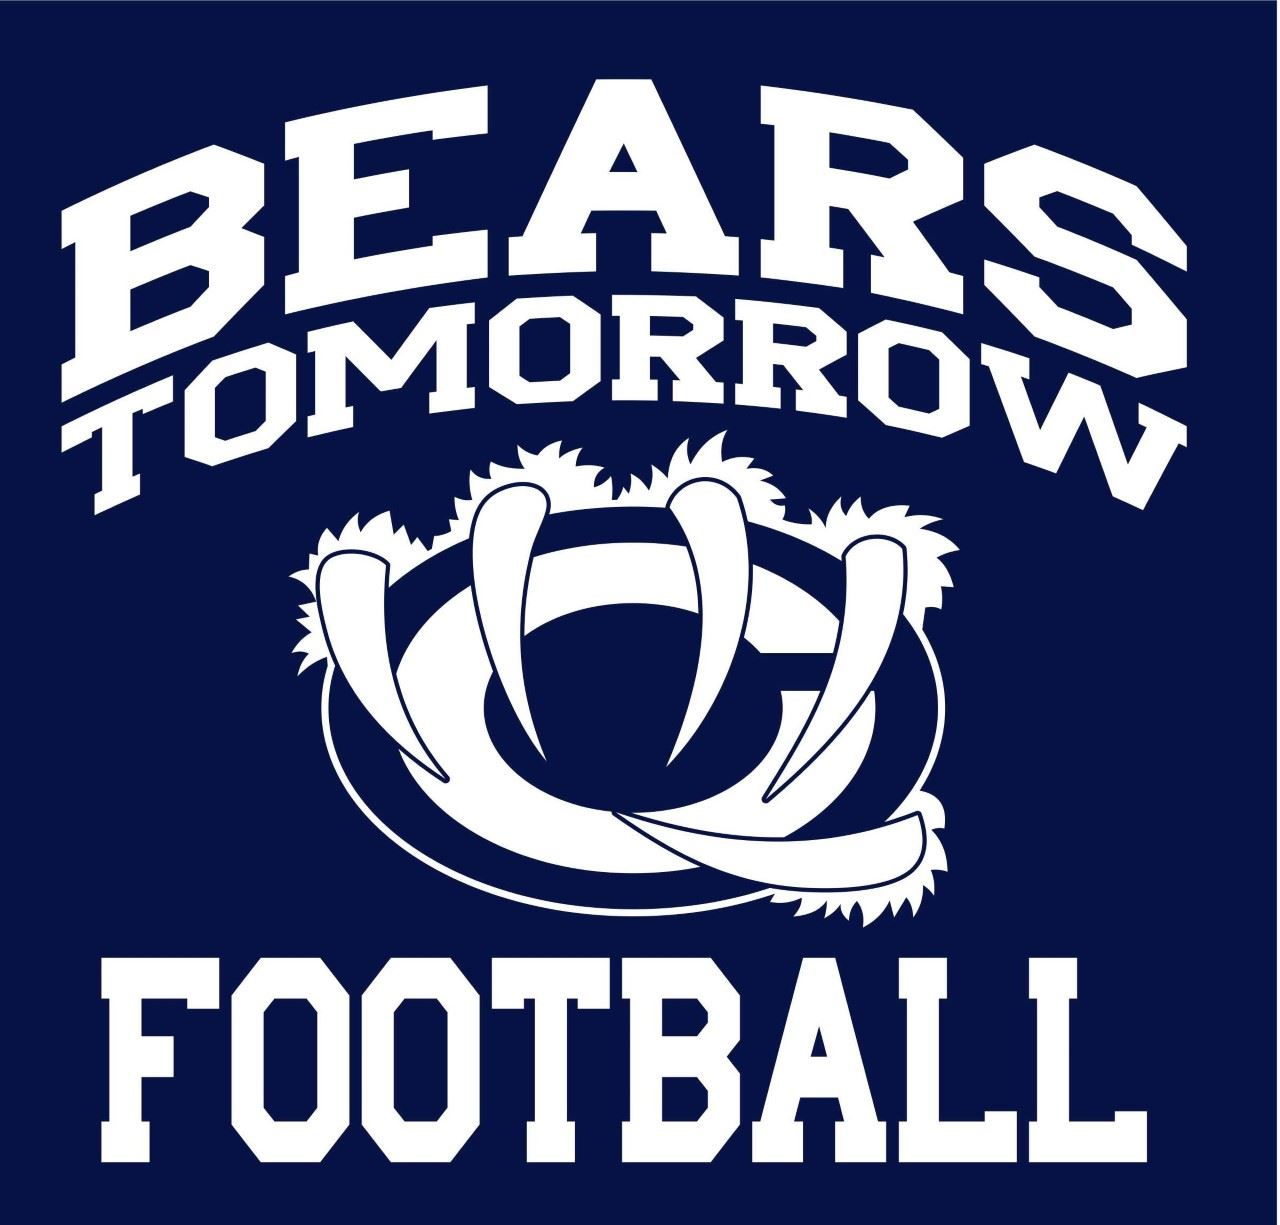 Bears Tomorrow Football - Bears 5th Grade